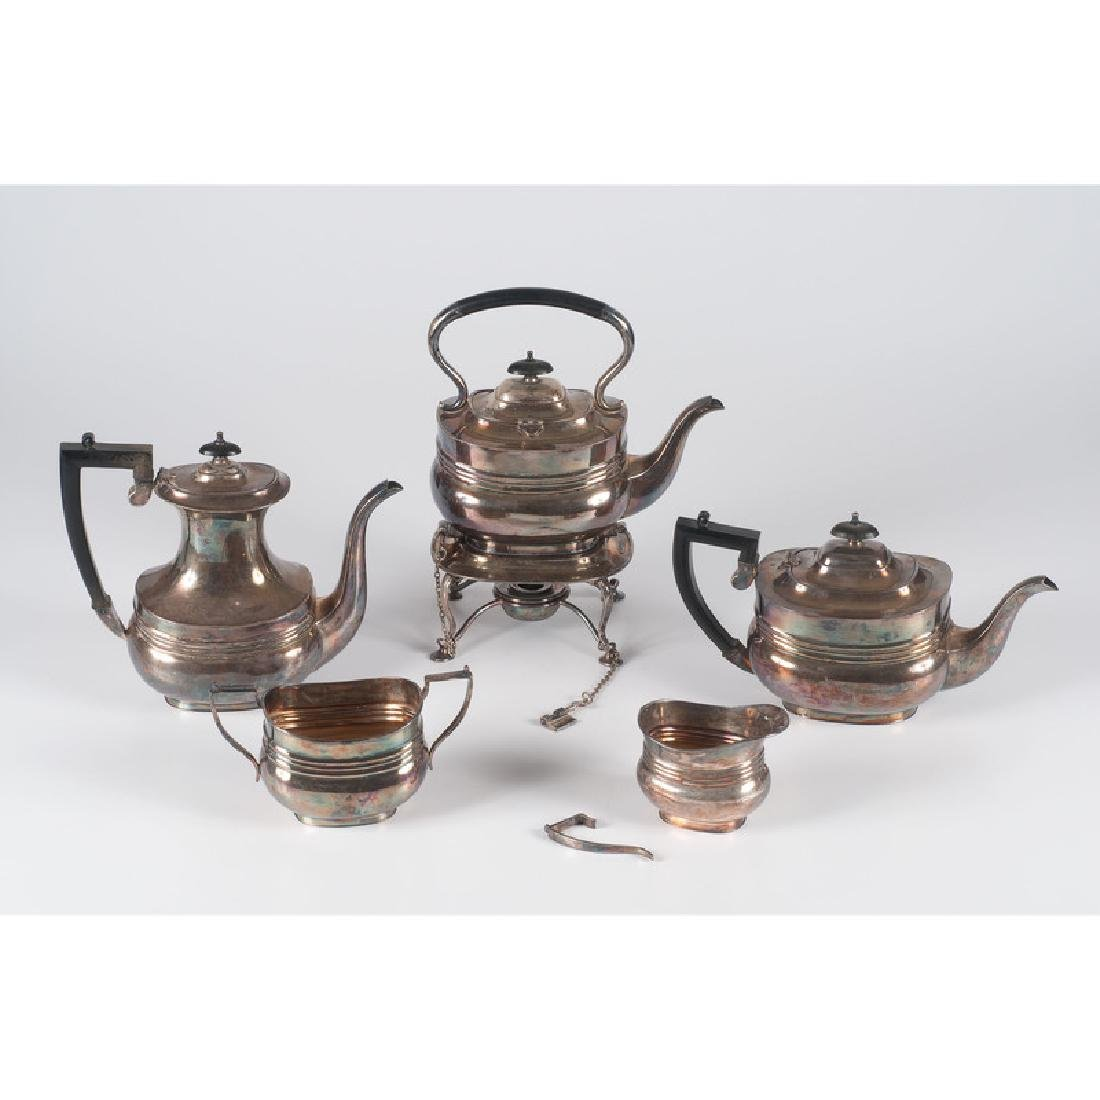 English Silverplated Tea Service